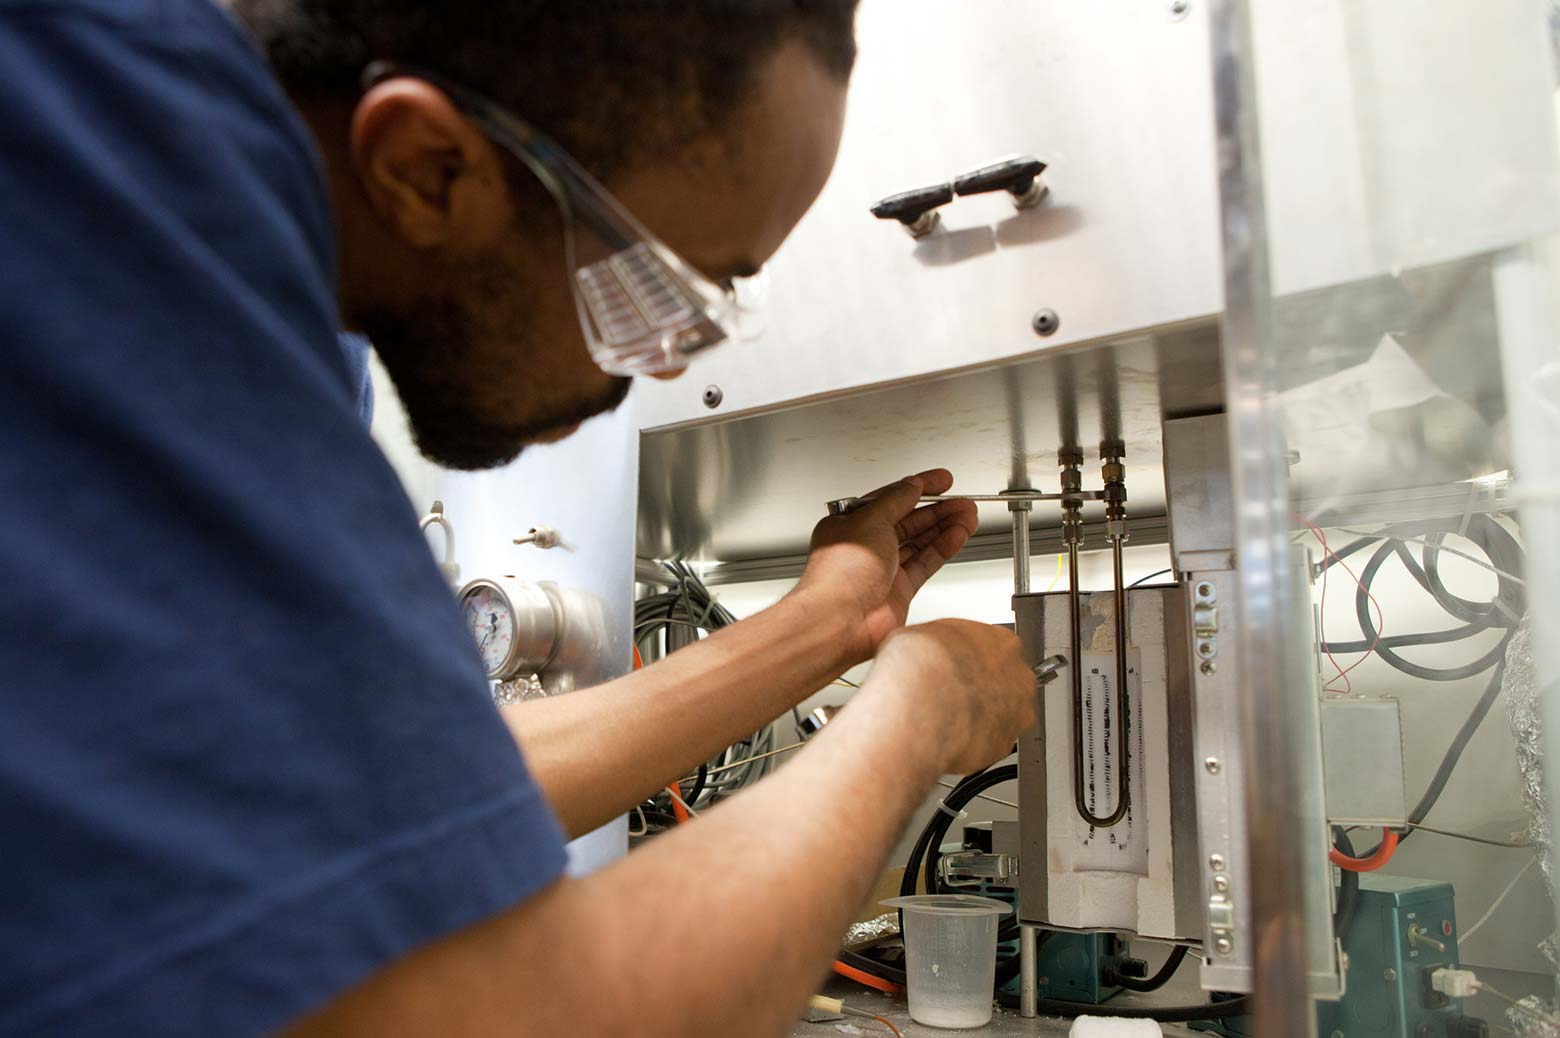 Graduate student works in chemical engineering lab